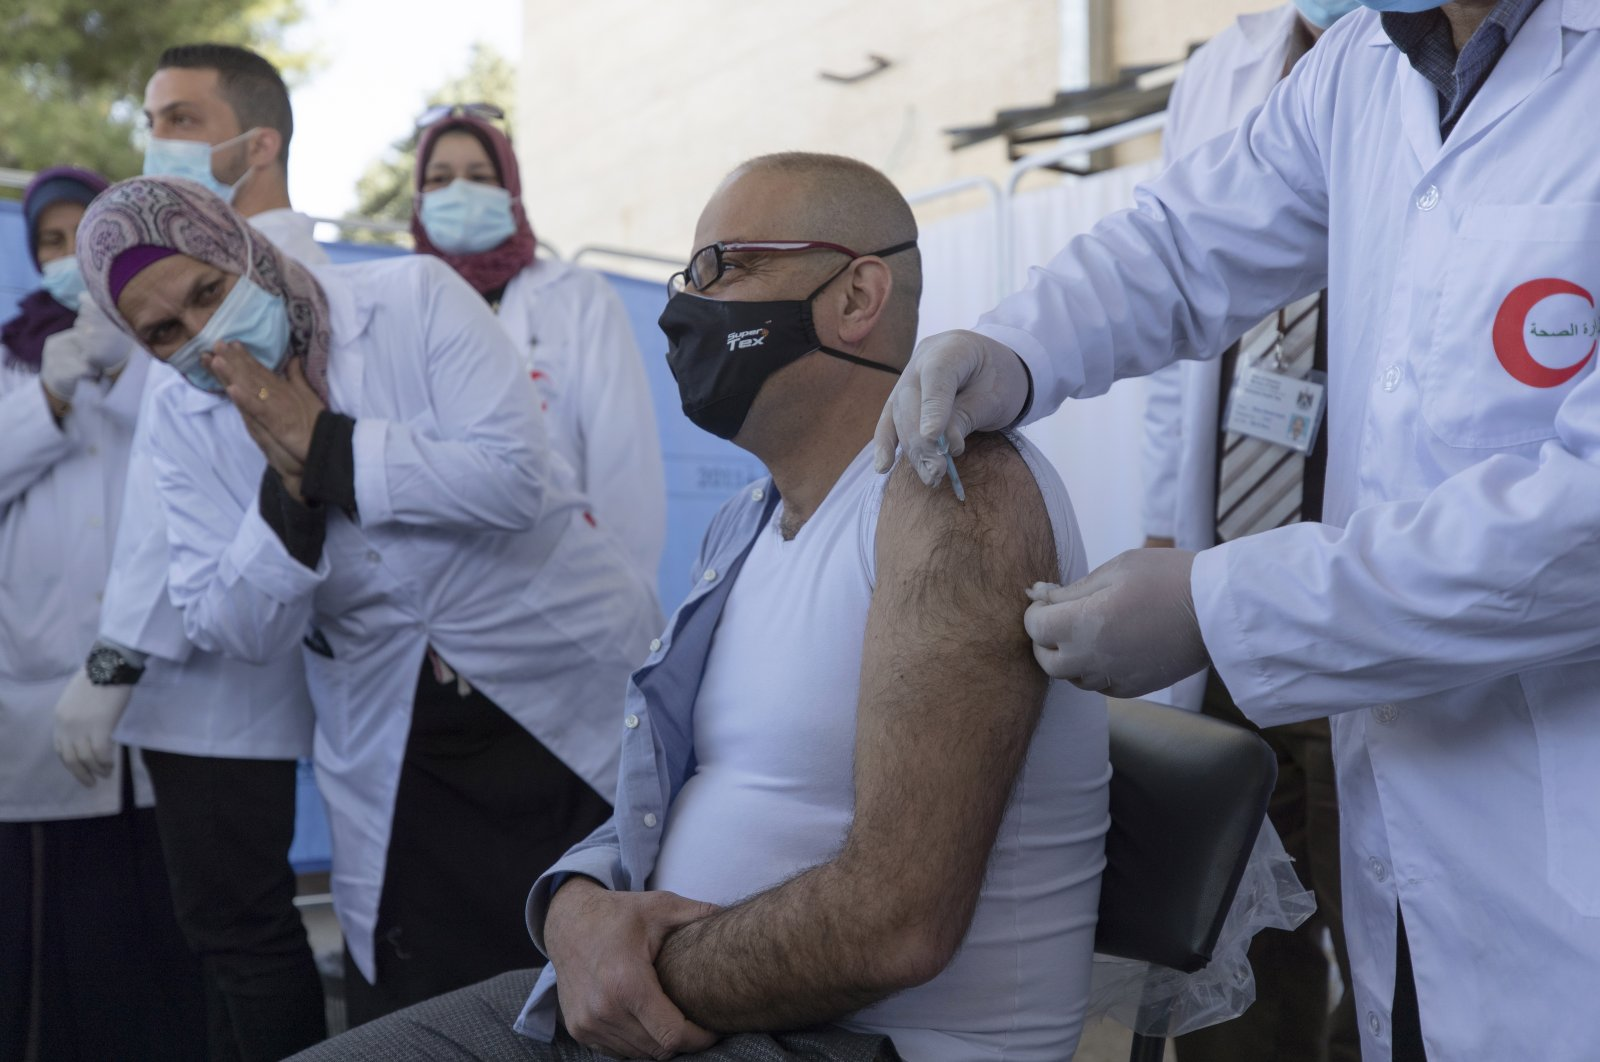 A medic administers a Moderna COVID-19 vaccine to a fellow medic during a campaign to vaccinate front-line medical workers, at the health ministry, in Bethlehem, the West Bank, Palestine, Feb. 3, 2021. (AP Photo)